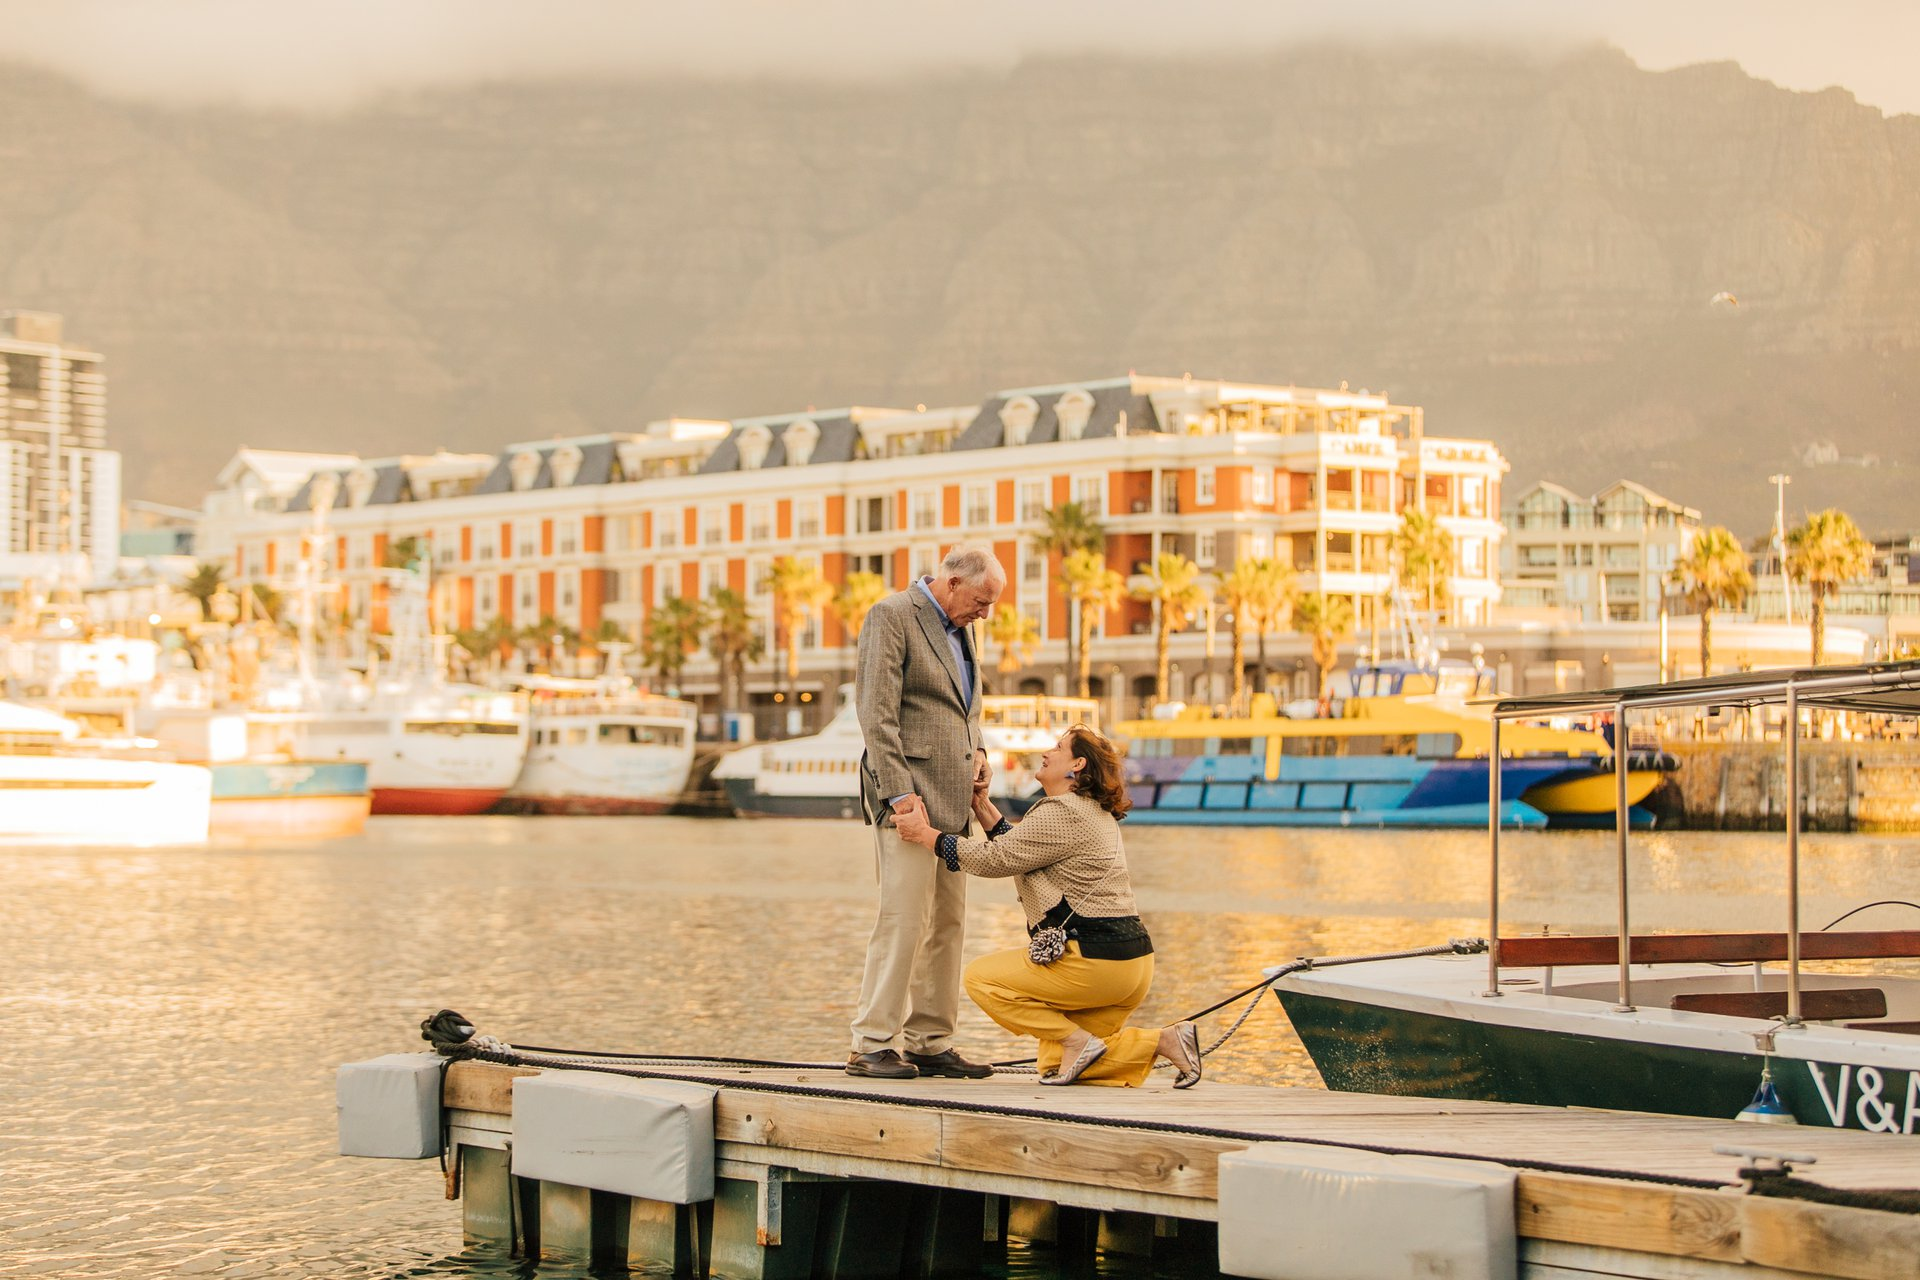 Flytographer Travel Story - Our 40th Anniversary